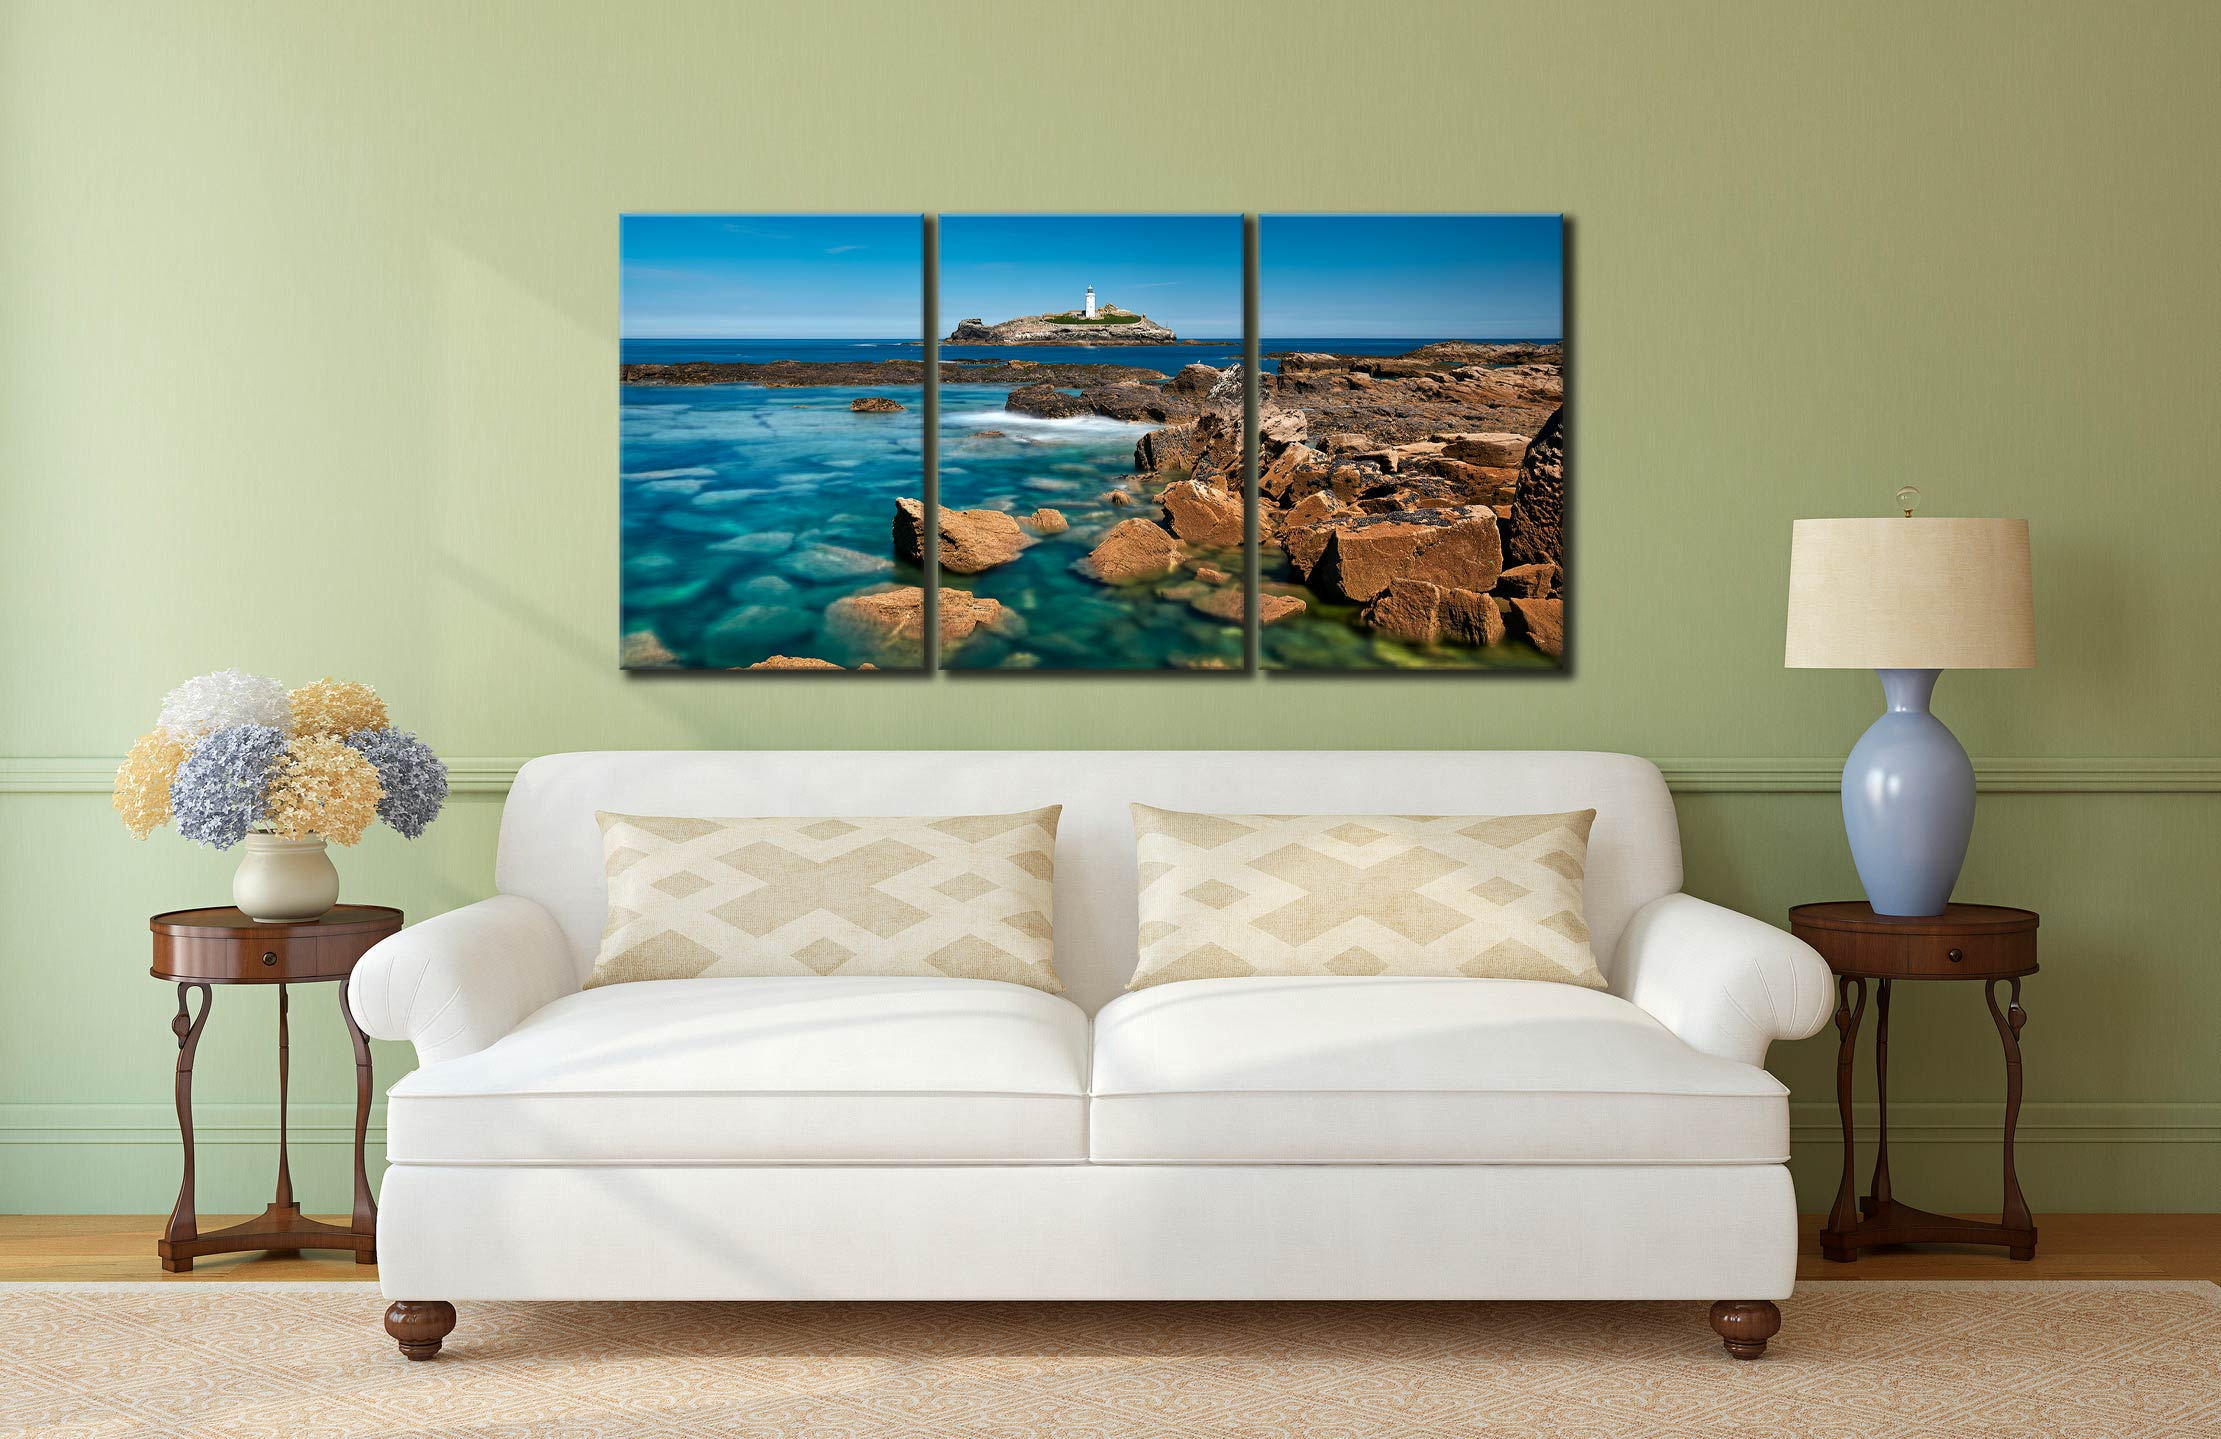 Calm Waters of Godrevy Point - 3 Panel Canvas on Wall